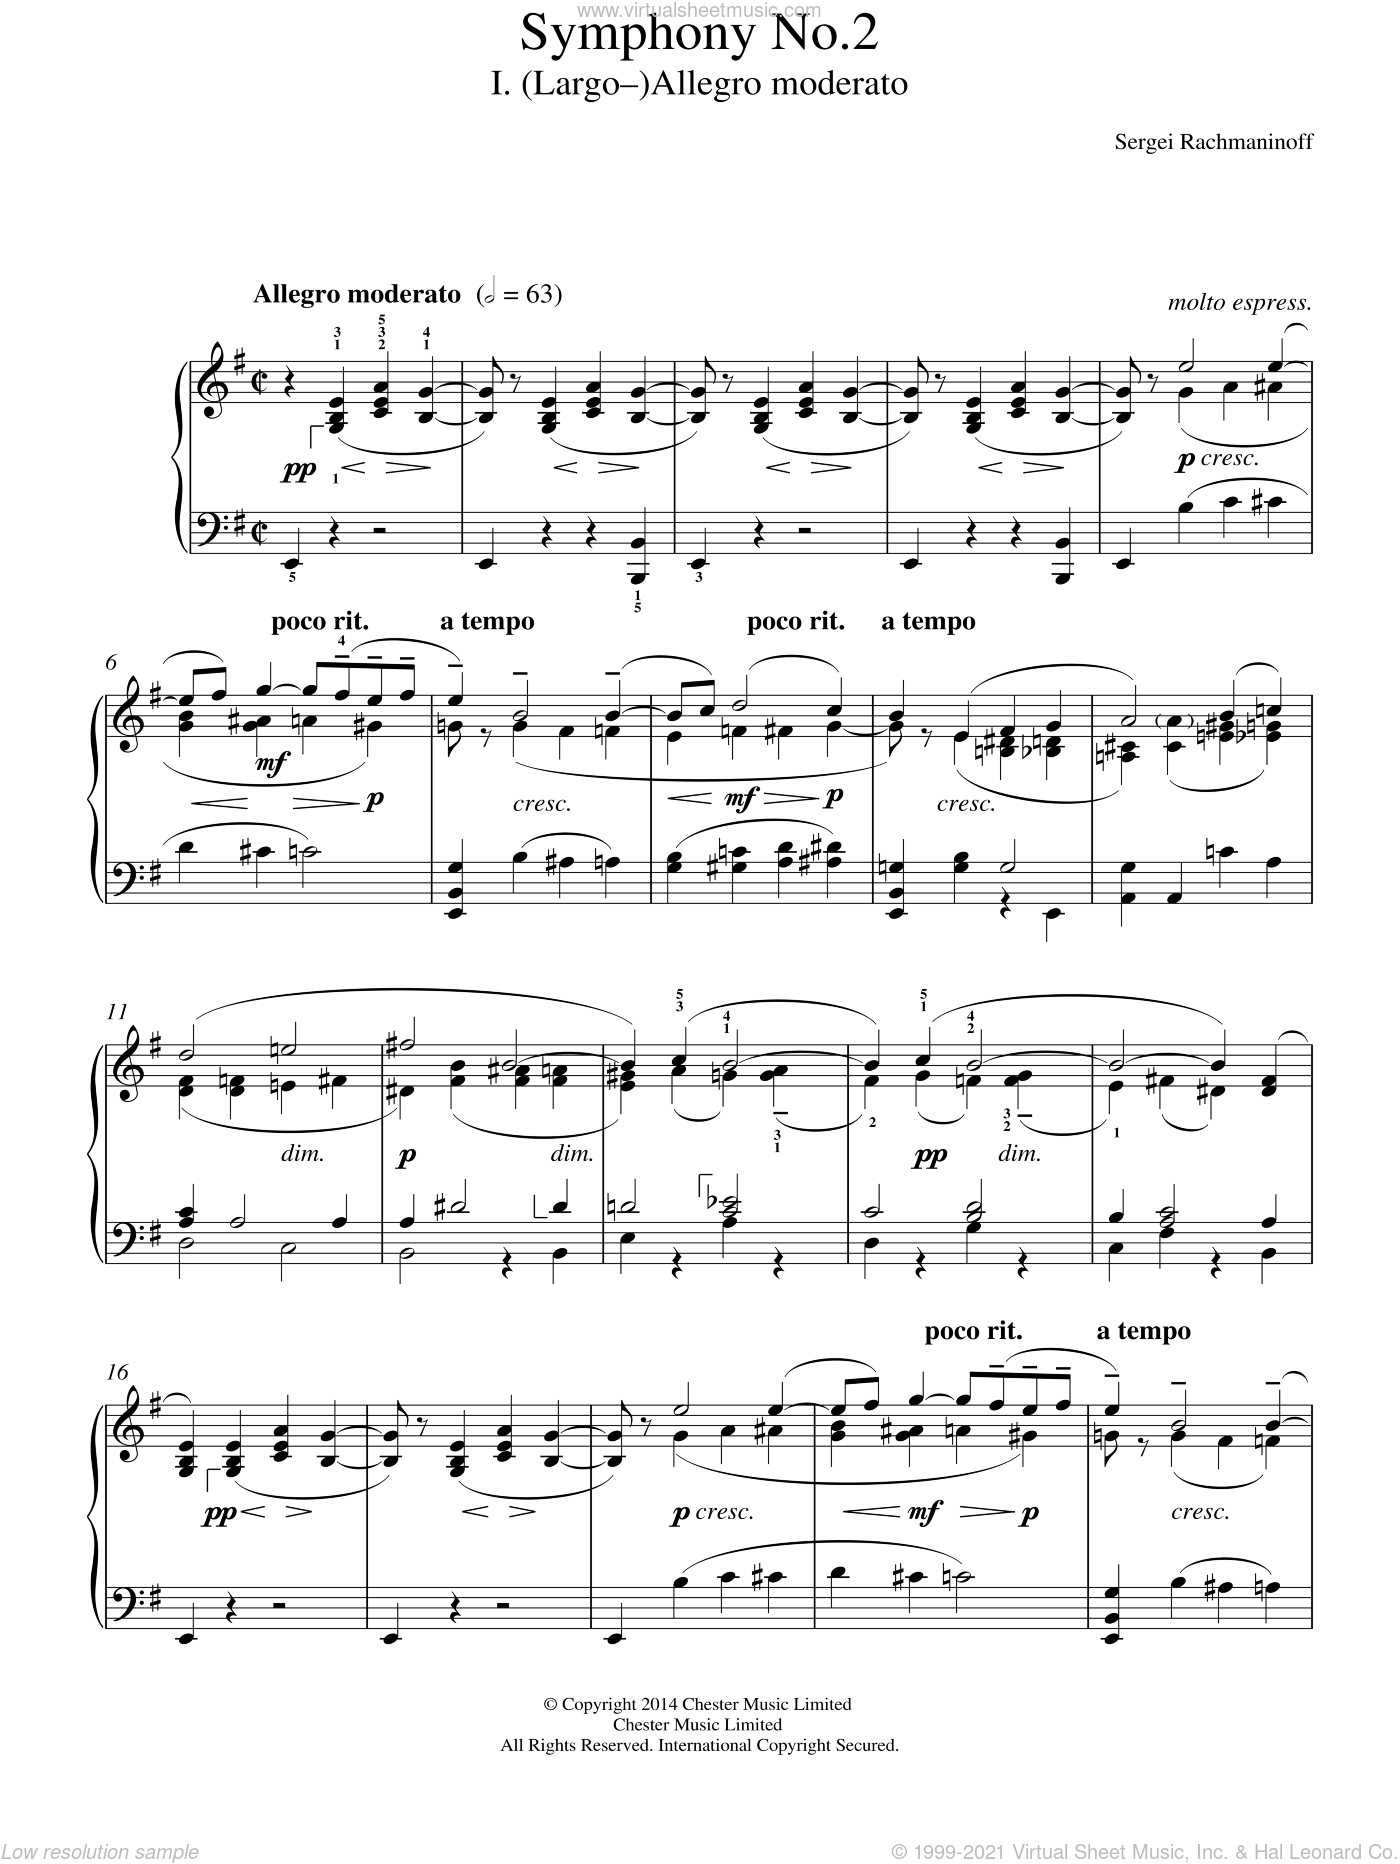 Symphony No.2 - 1st Movement sheet music for piano solo by Serjeij Rachmaninoff